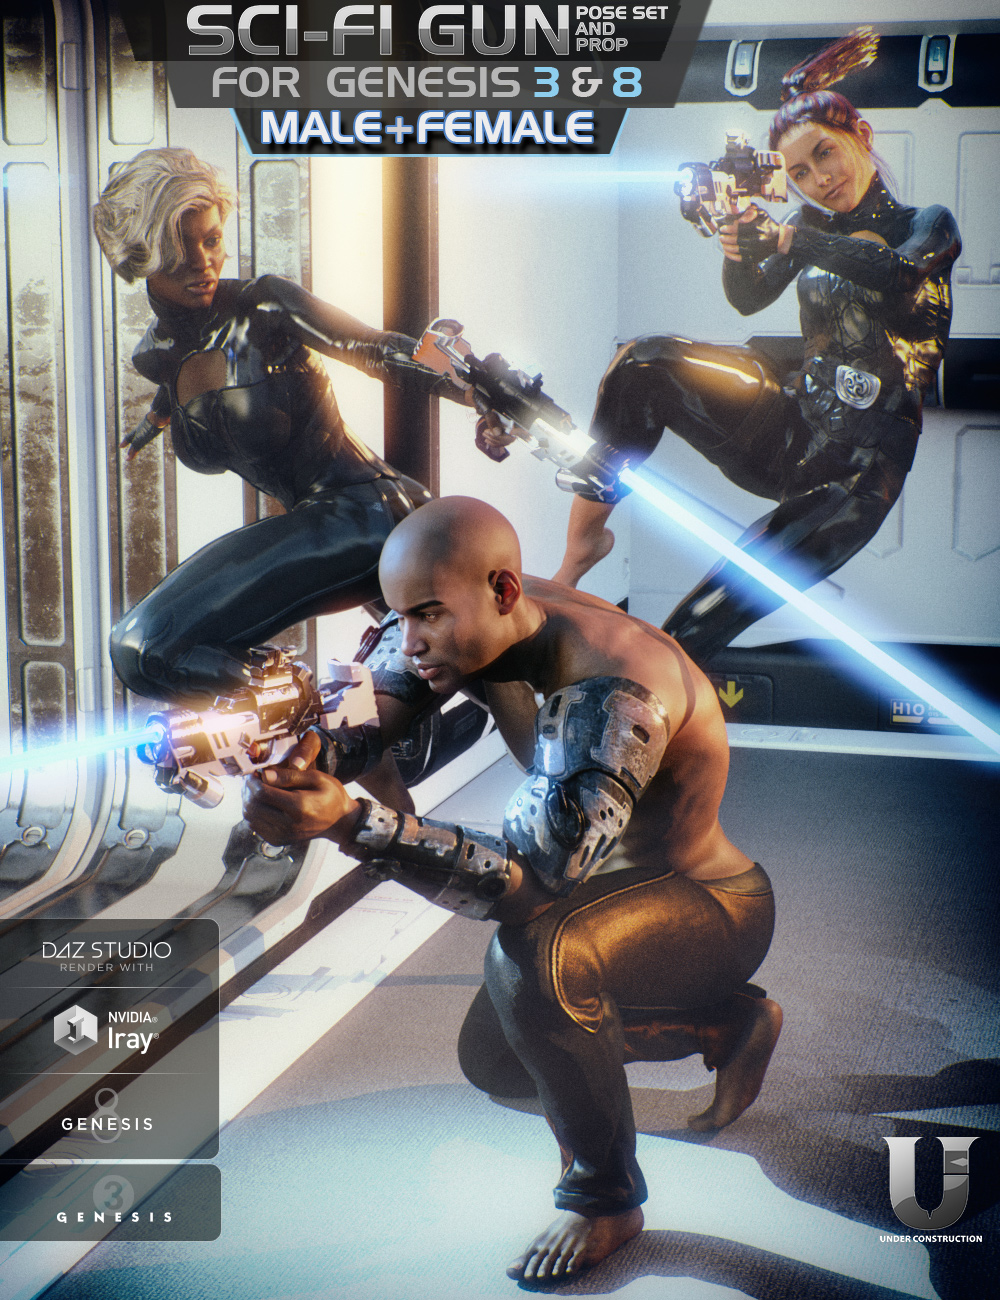 Sci-Fi Gun and Poses for Genesis 3 and 8 by: UnderConstruction, 3D Models by Daz 3D